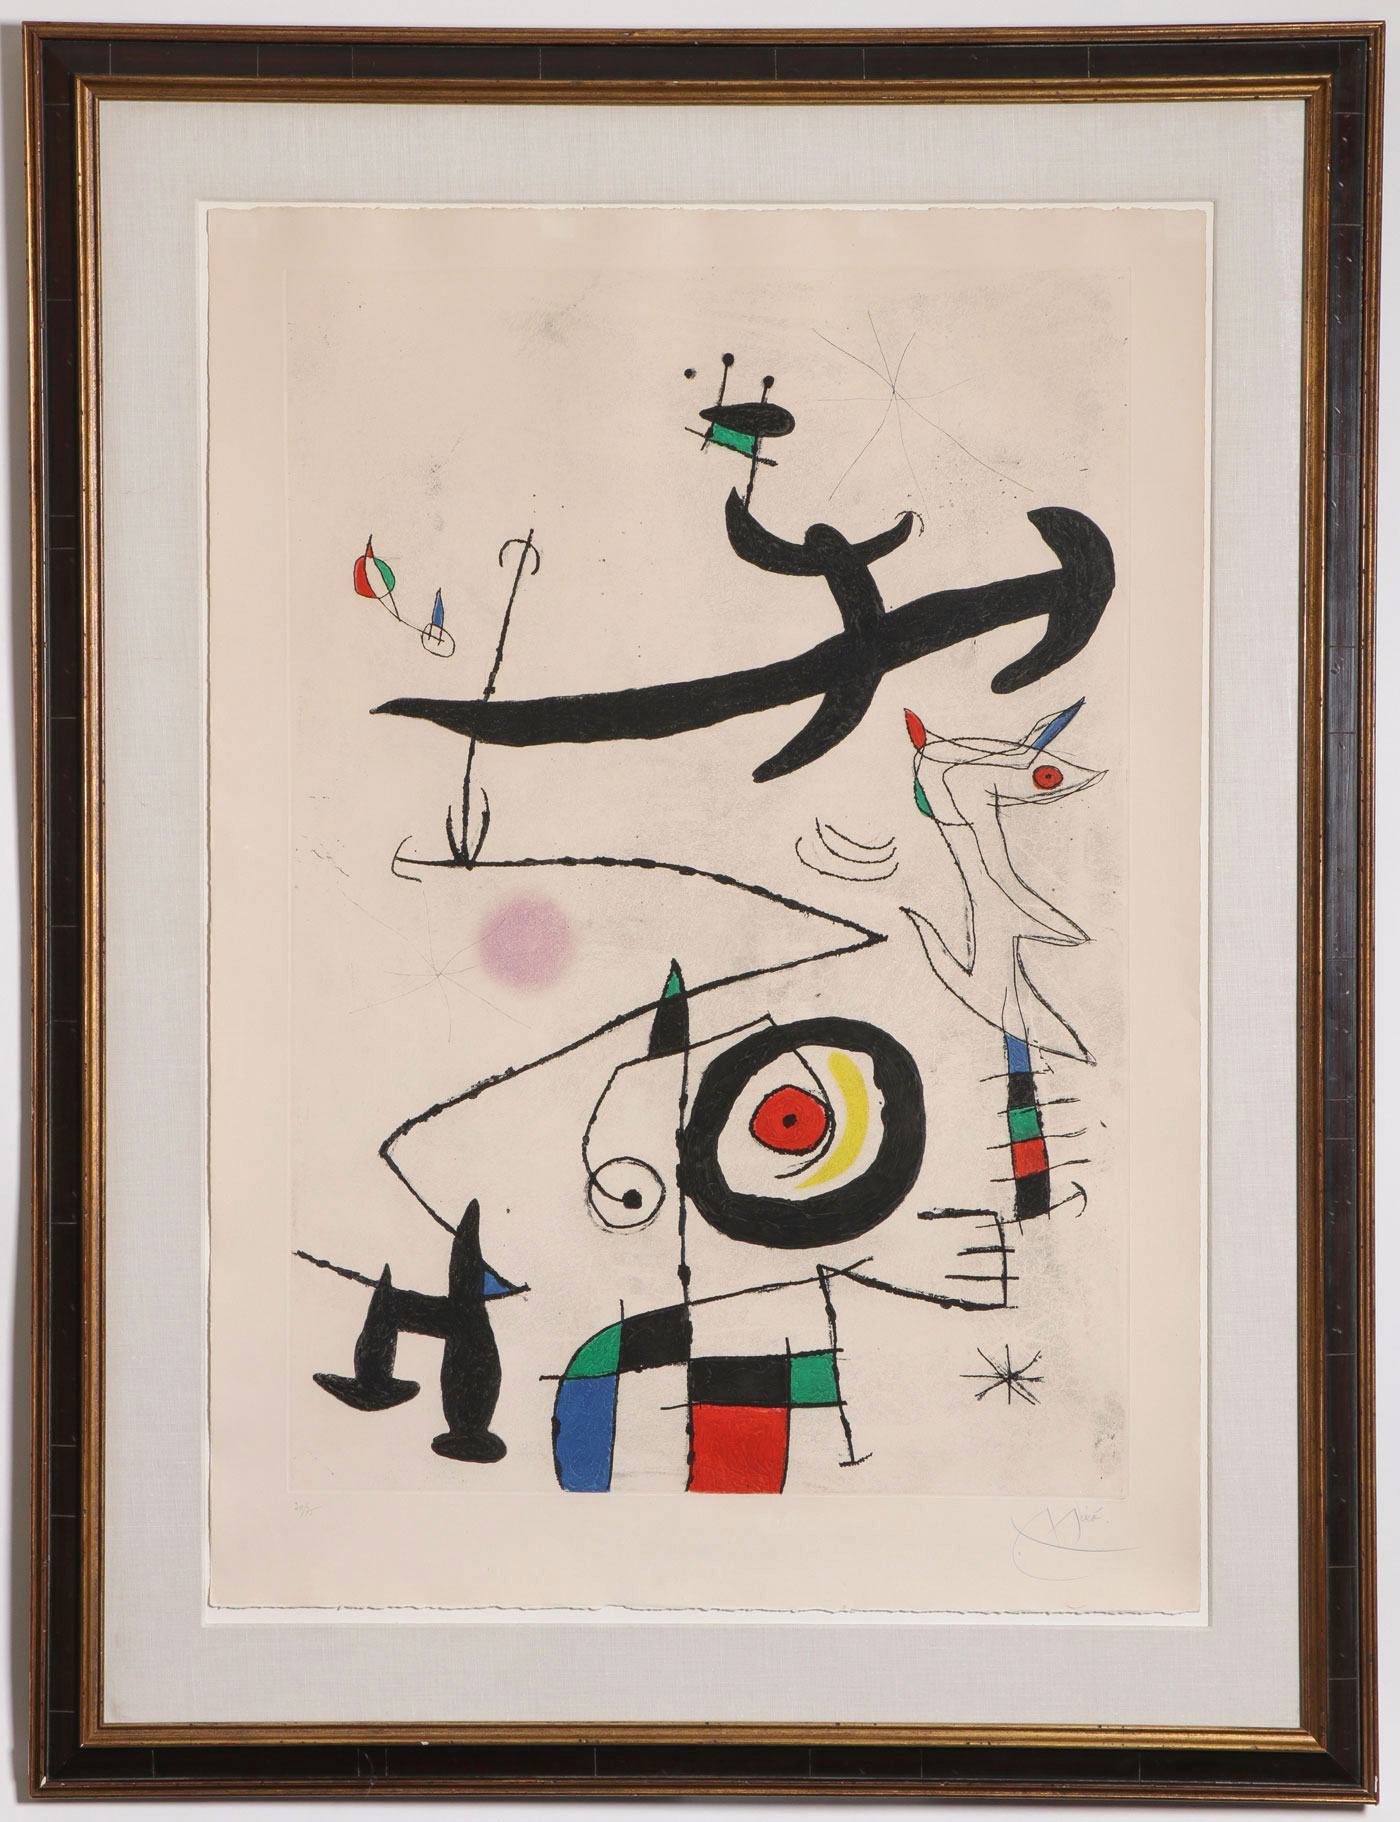 LARGE MIRO SIGNED ETCHING, 1969 - Image 3 of 8